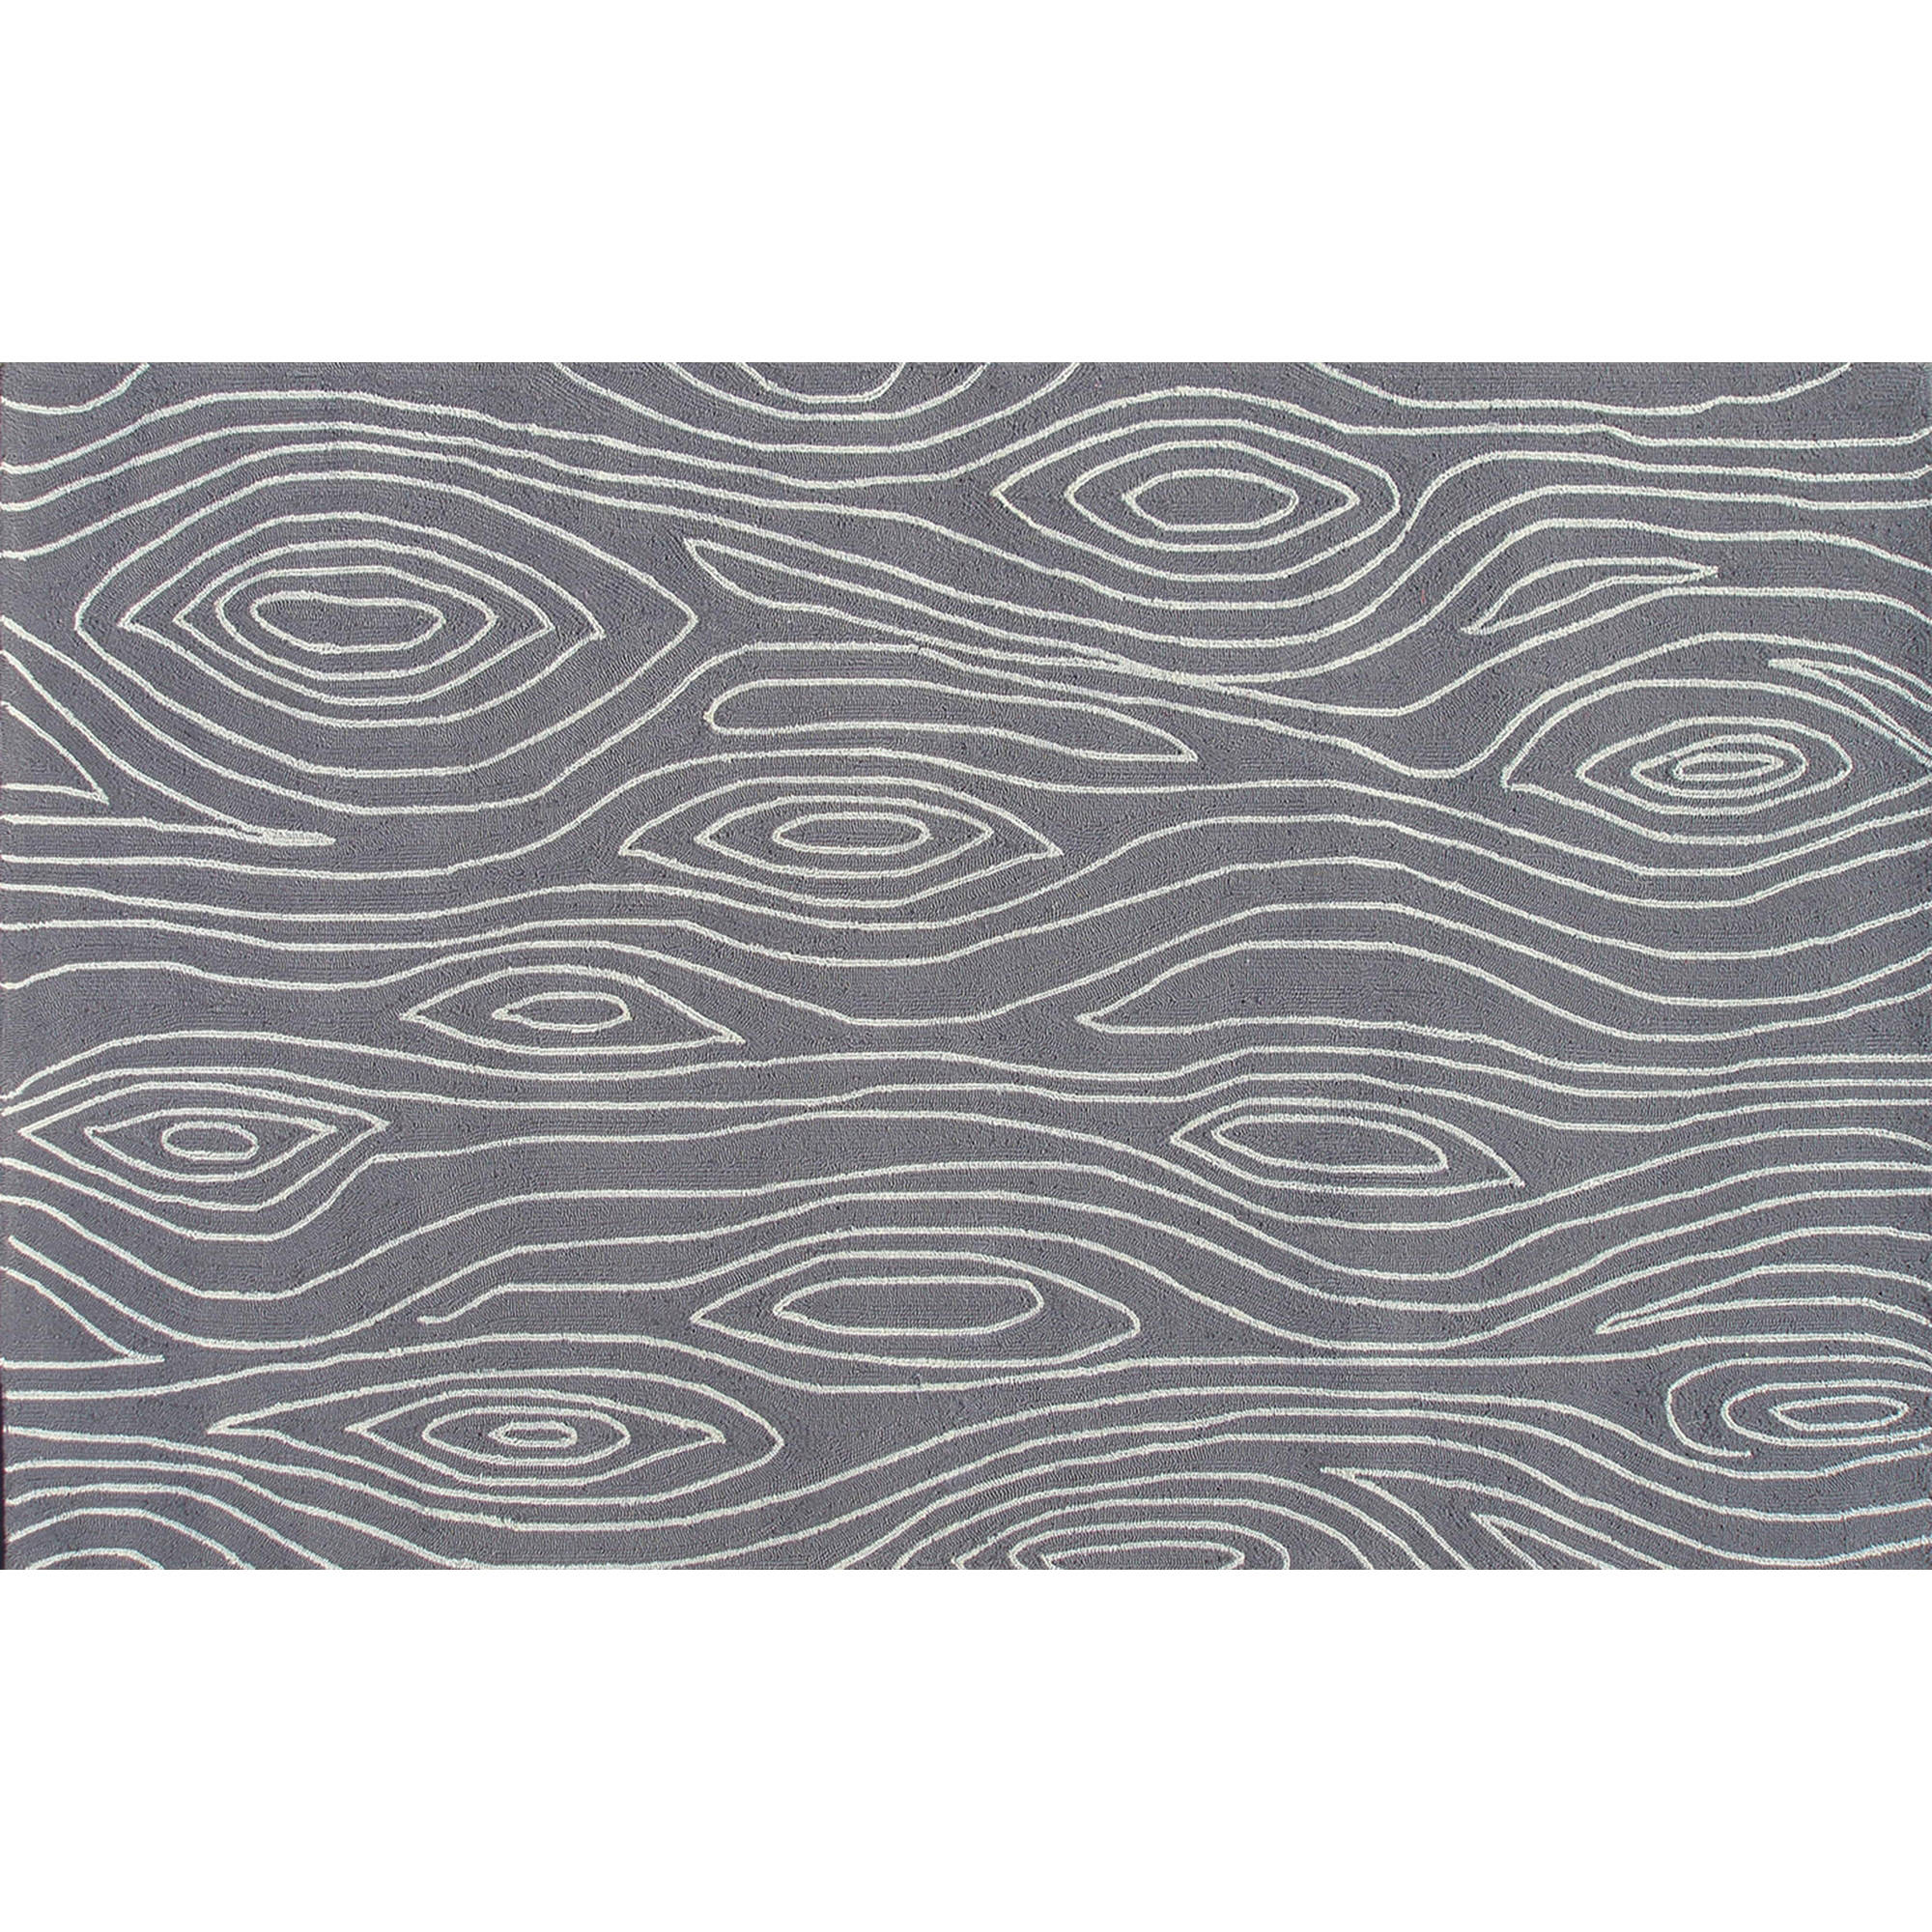 "The Rug Market Shire Gray 5"" x 8"" Area Rug by The Rug Market"